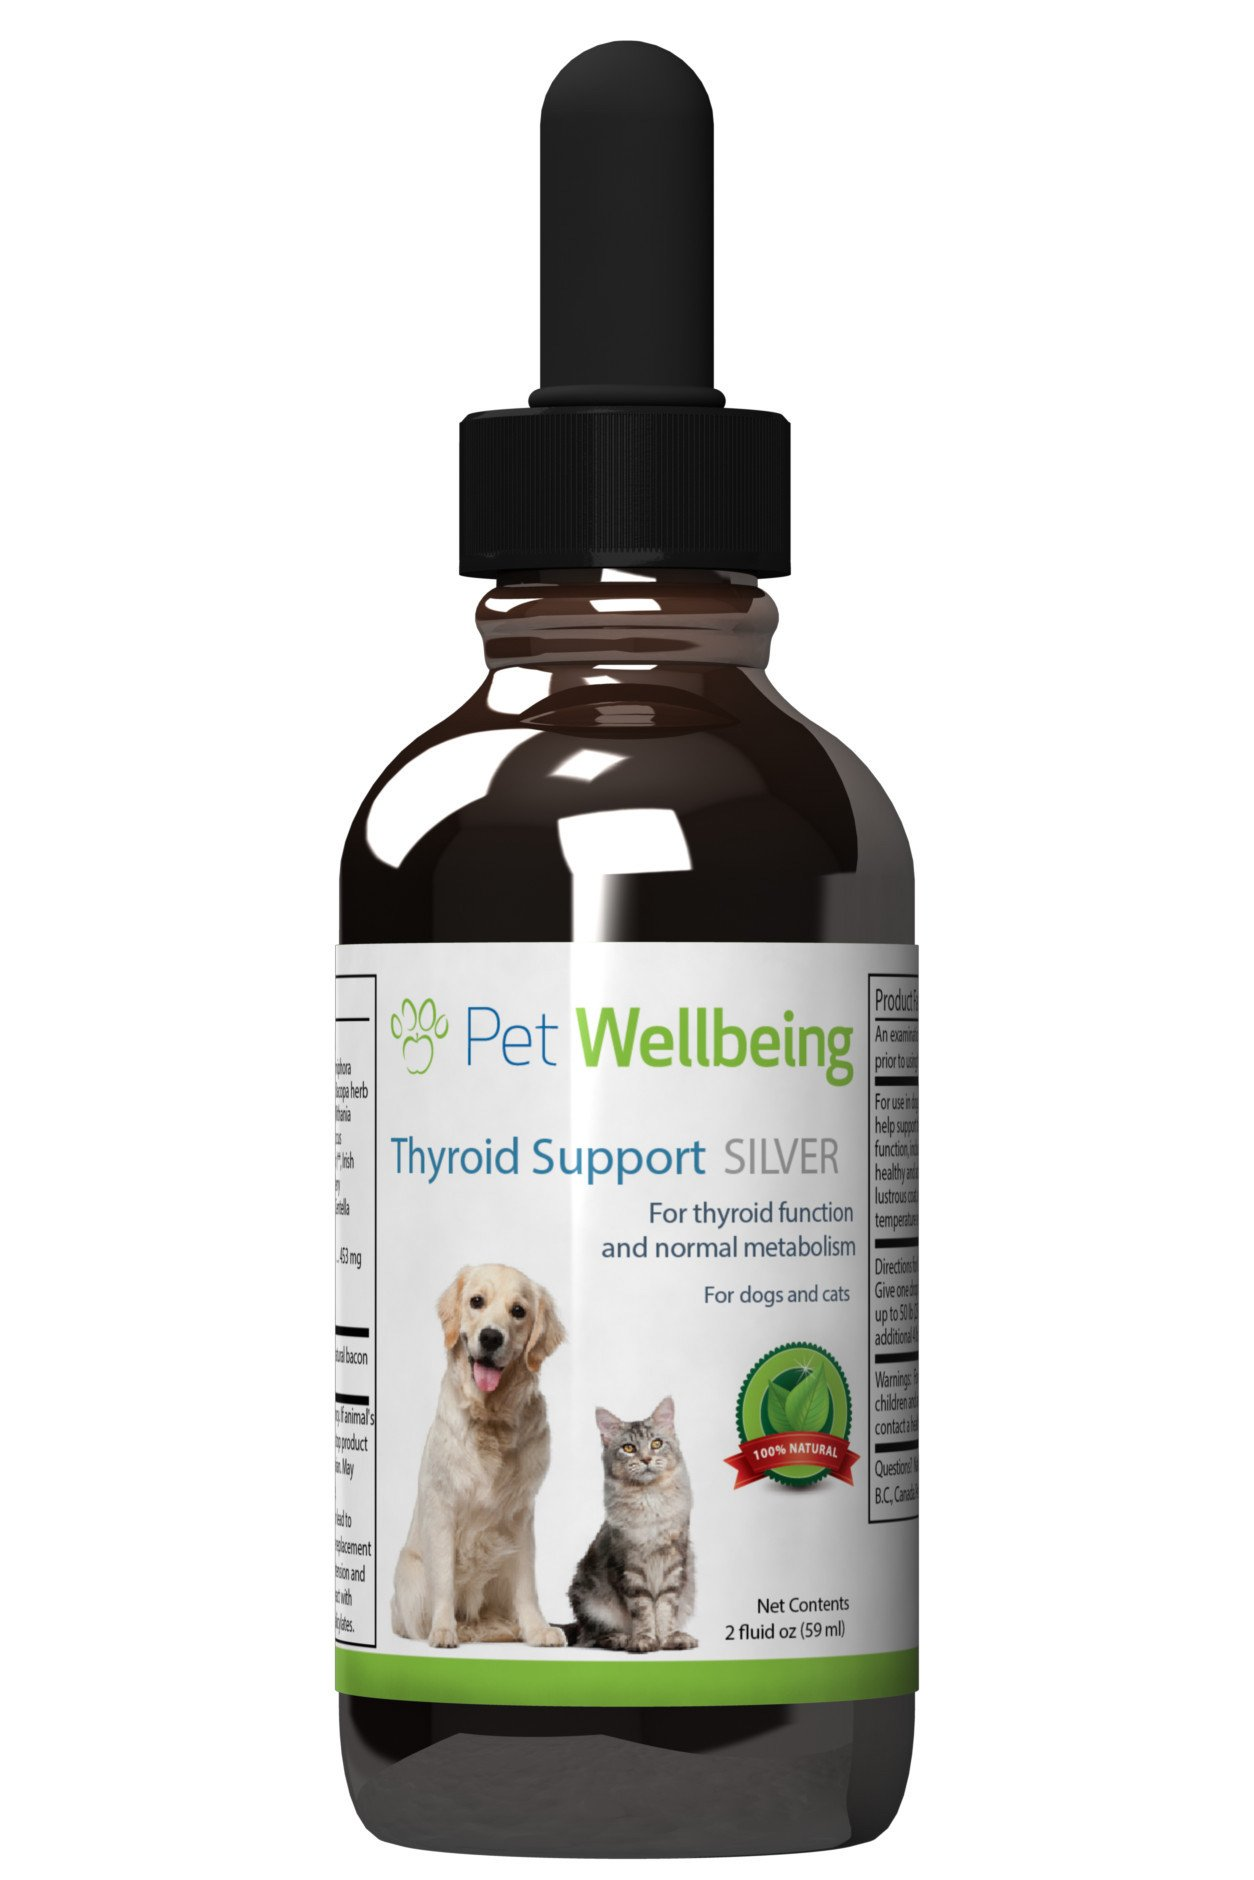 Pet Wellbeing - Thyroid Support Silver for Dogs - Natural Support for Thyroid Health  - 2oz(59ml)